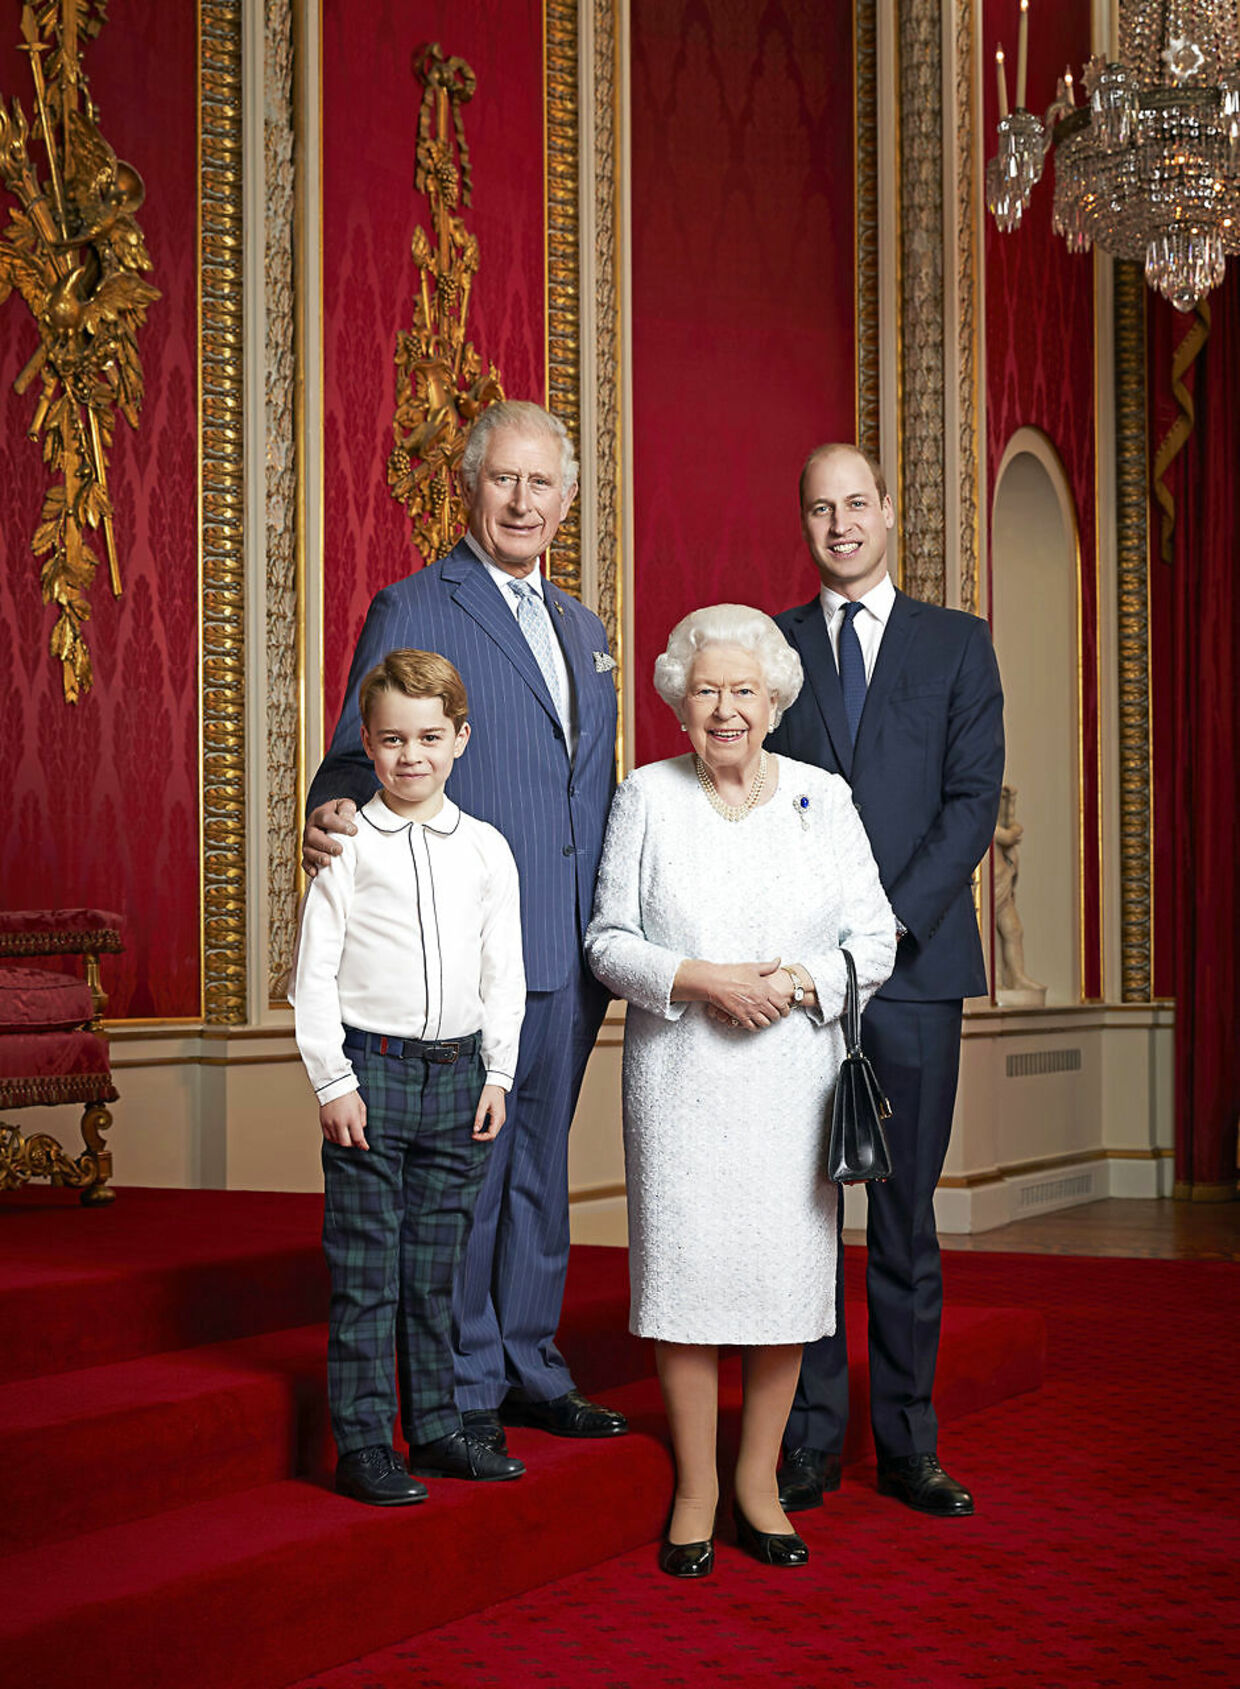 Britain's Queen Elizabeth II, Prince Charles, Prince William Prince George pose for a portrait to mark the start of a new decade, in the Throne Room at Buckingham Palace in London, Britain December 18, 2019. Ranald Mackechnie/Handout via REUTERS. THIS IMAGE HAS BEEN SUPPLIED BY A THIRD PARTY.NO RESALES.NO ARCHIVES.NO SALES. NOT FOR USE AFTER JANUARY 15, 2020 WITHOUT PRIOR PERMISSION FROM ROYAL COMMUNICATIONS. MANDATORY CREDIT. THIS HANDOUT PHOTO MAY ONLY BE USED IN FOR EDITORIAL REPORTING PURPOSES FOR THE CONTEMPORANEOUS ILLUSTRATION OF EVENTS, THINGS OR THE PEOPLE IN THE IMAGE OR FACTS MENTIONED IN THE CAPTION. REUSE OF THE PICTURE MAY REQUIRE FURTHER PERMISSION FROM THE COPYRIGHT HOLDER.